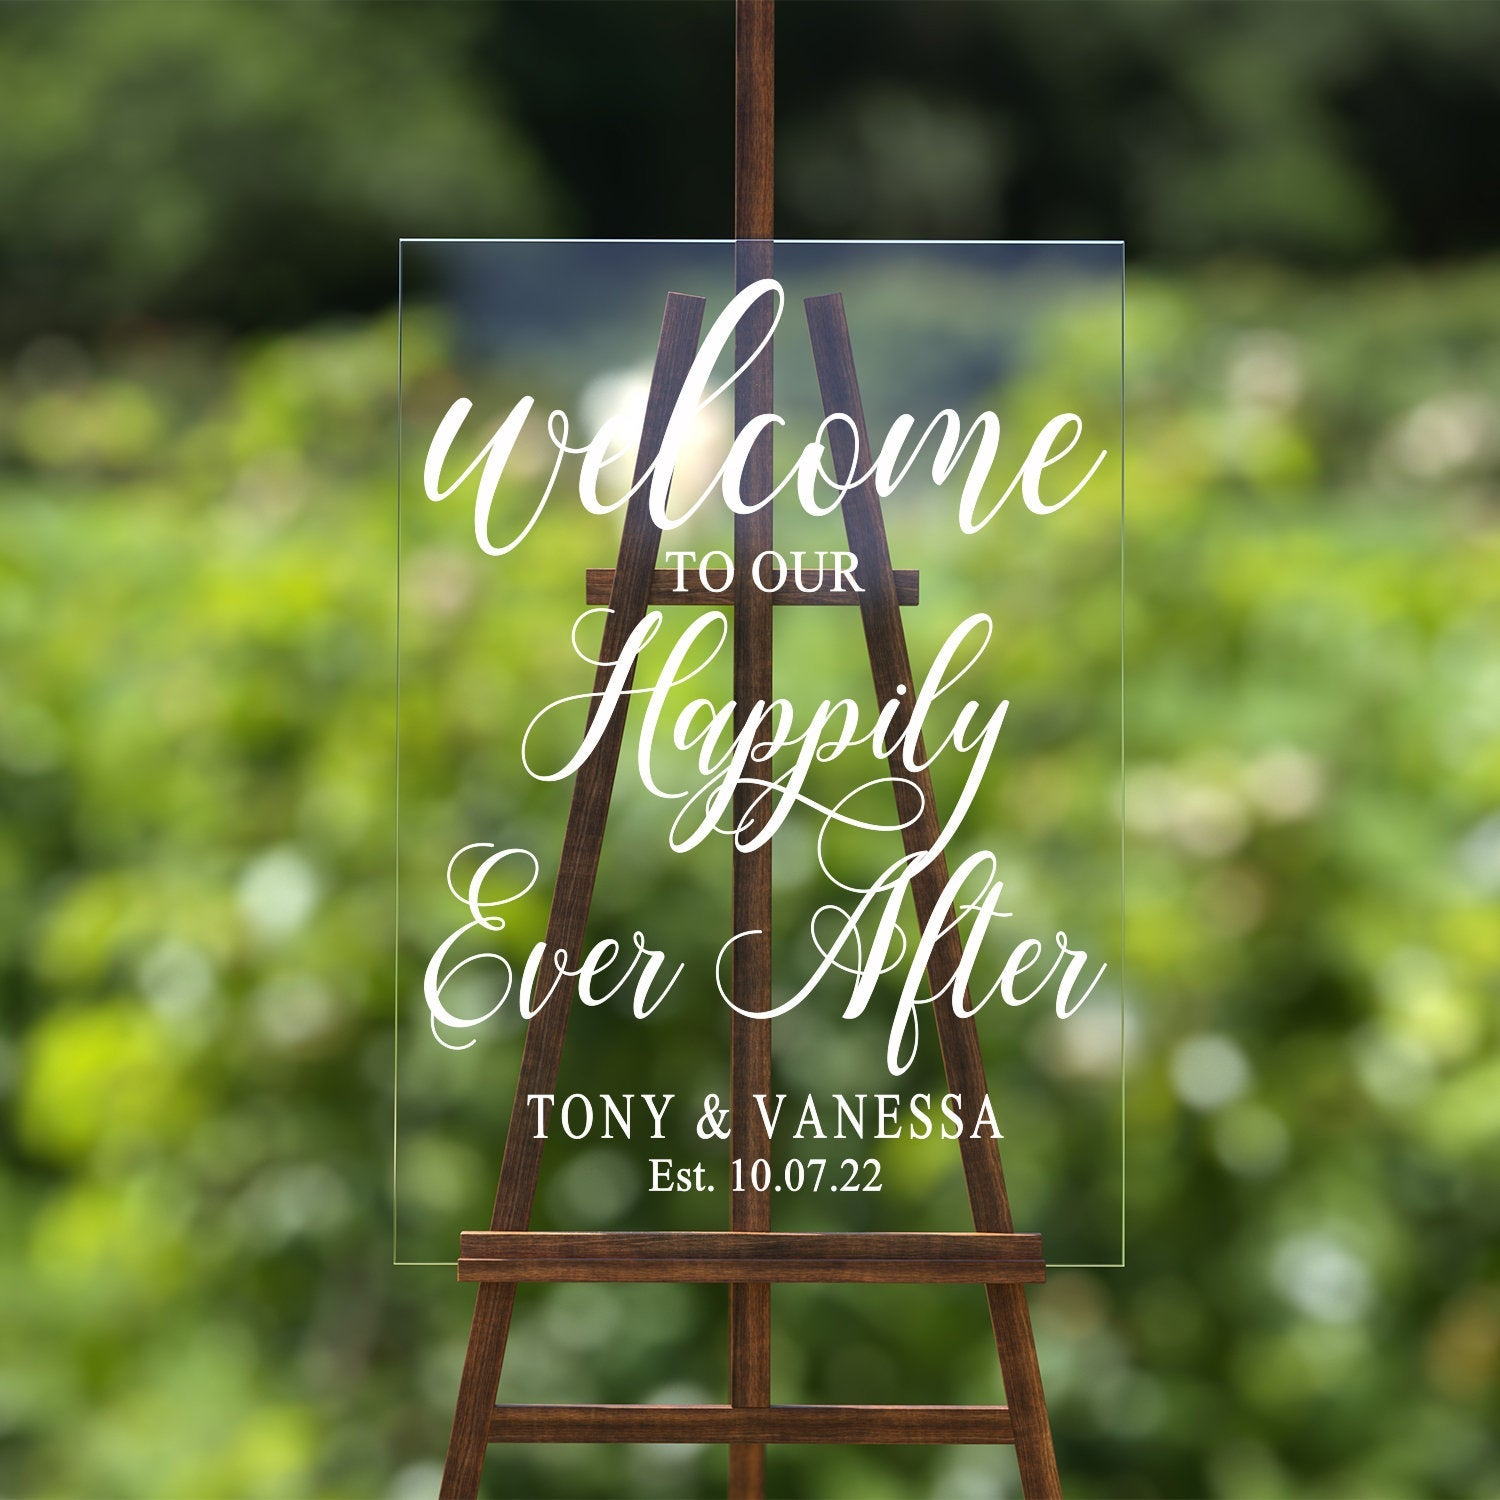 Happily Ever After Wedding Sign Decal | Welcome Wedding Sign | Chalkboard Decal | Personalized Sign | Rustic Wedding Decor